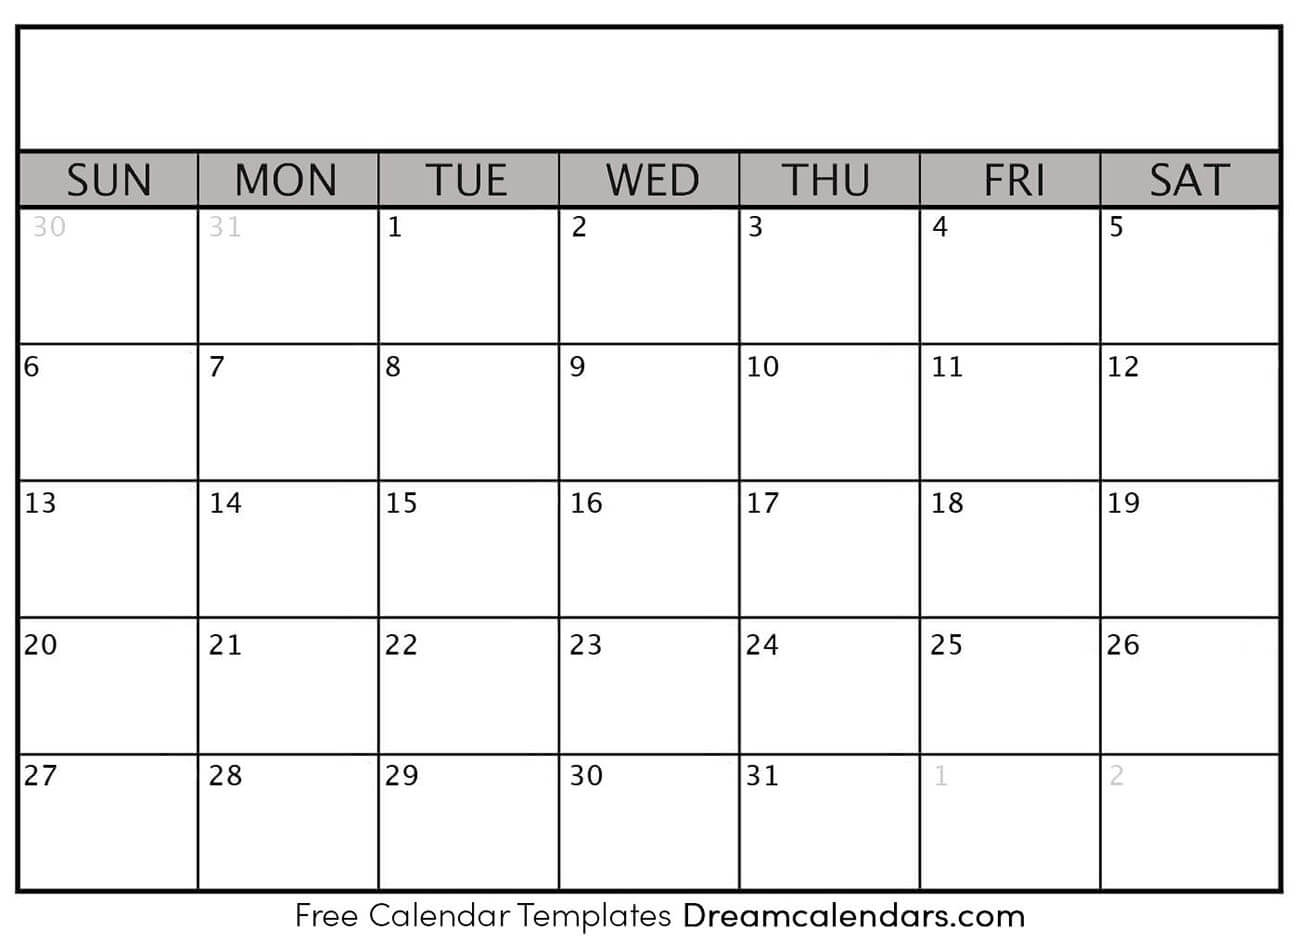 Printable Blank Calendar 2020 | Dream Calendars pertaining to Printable Calendar With Space To Write